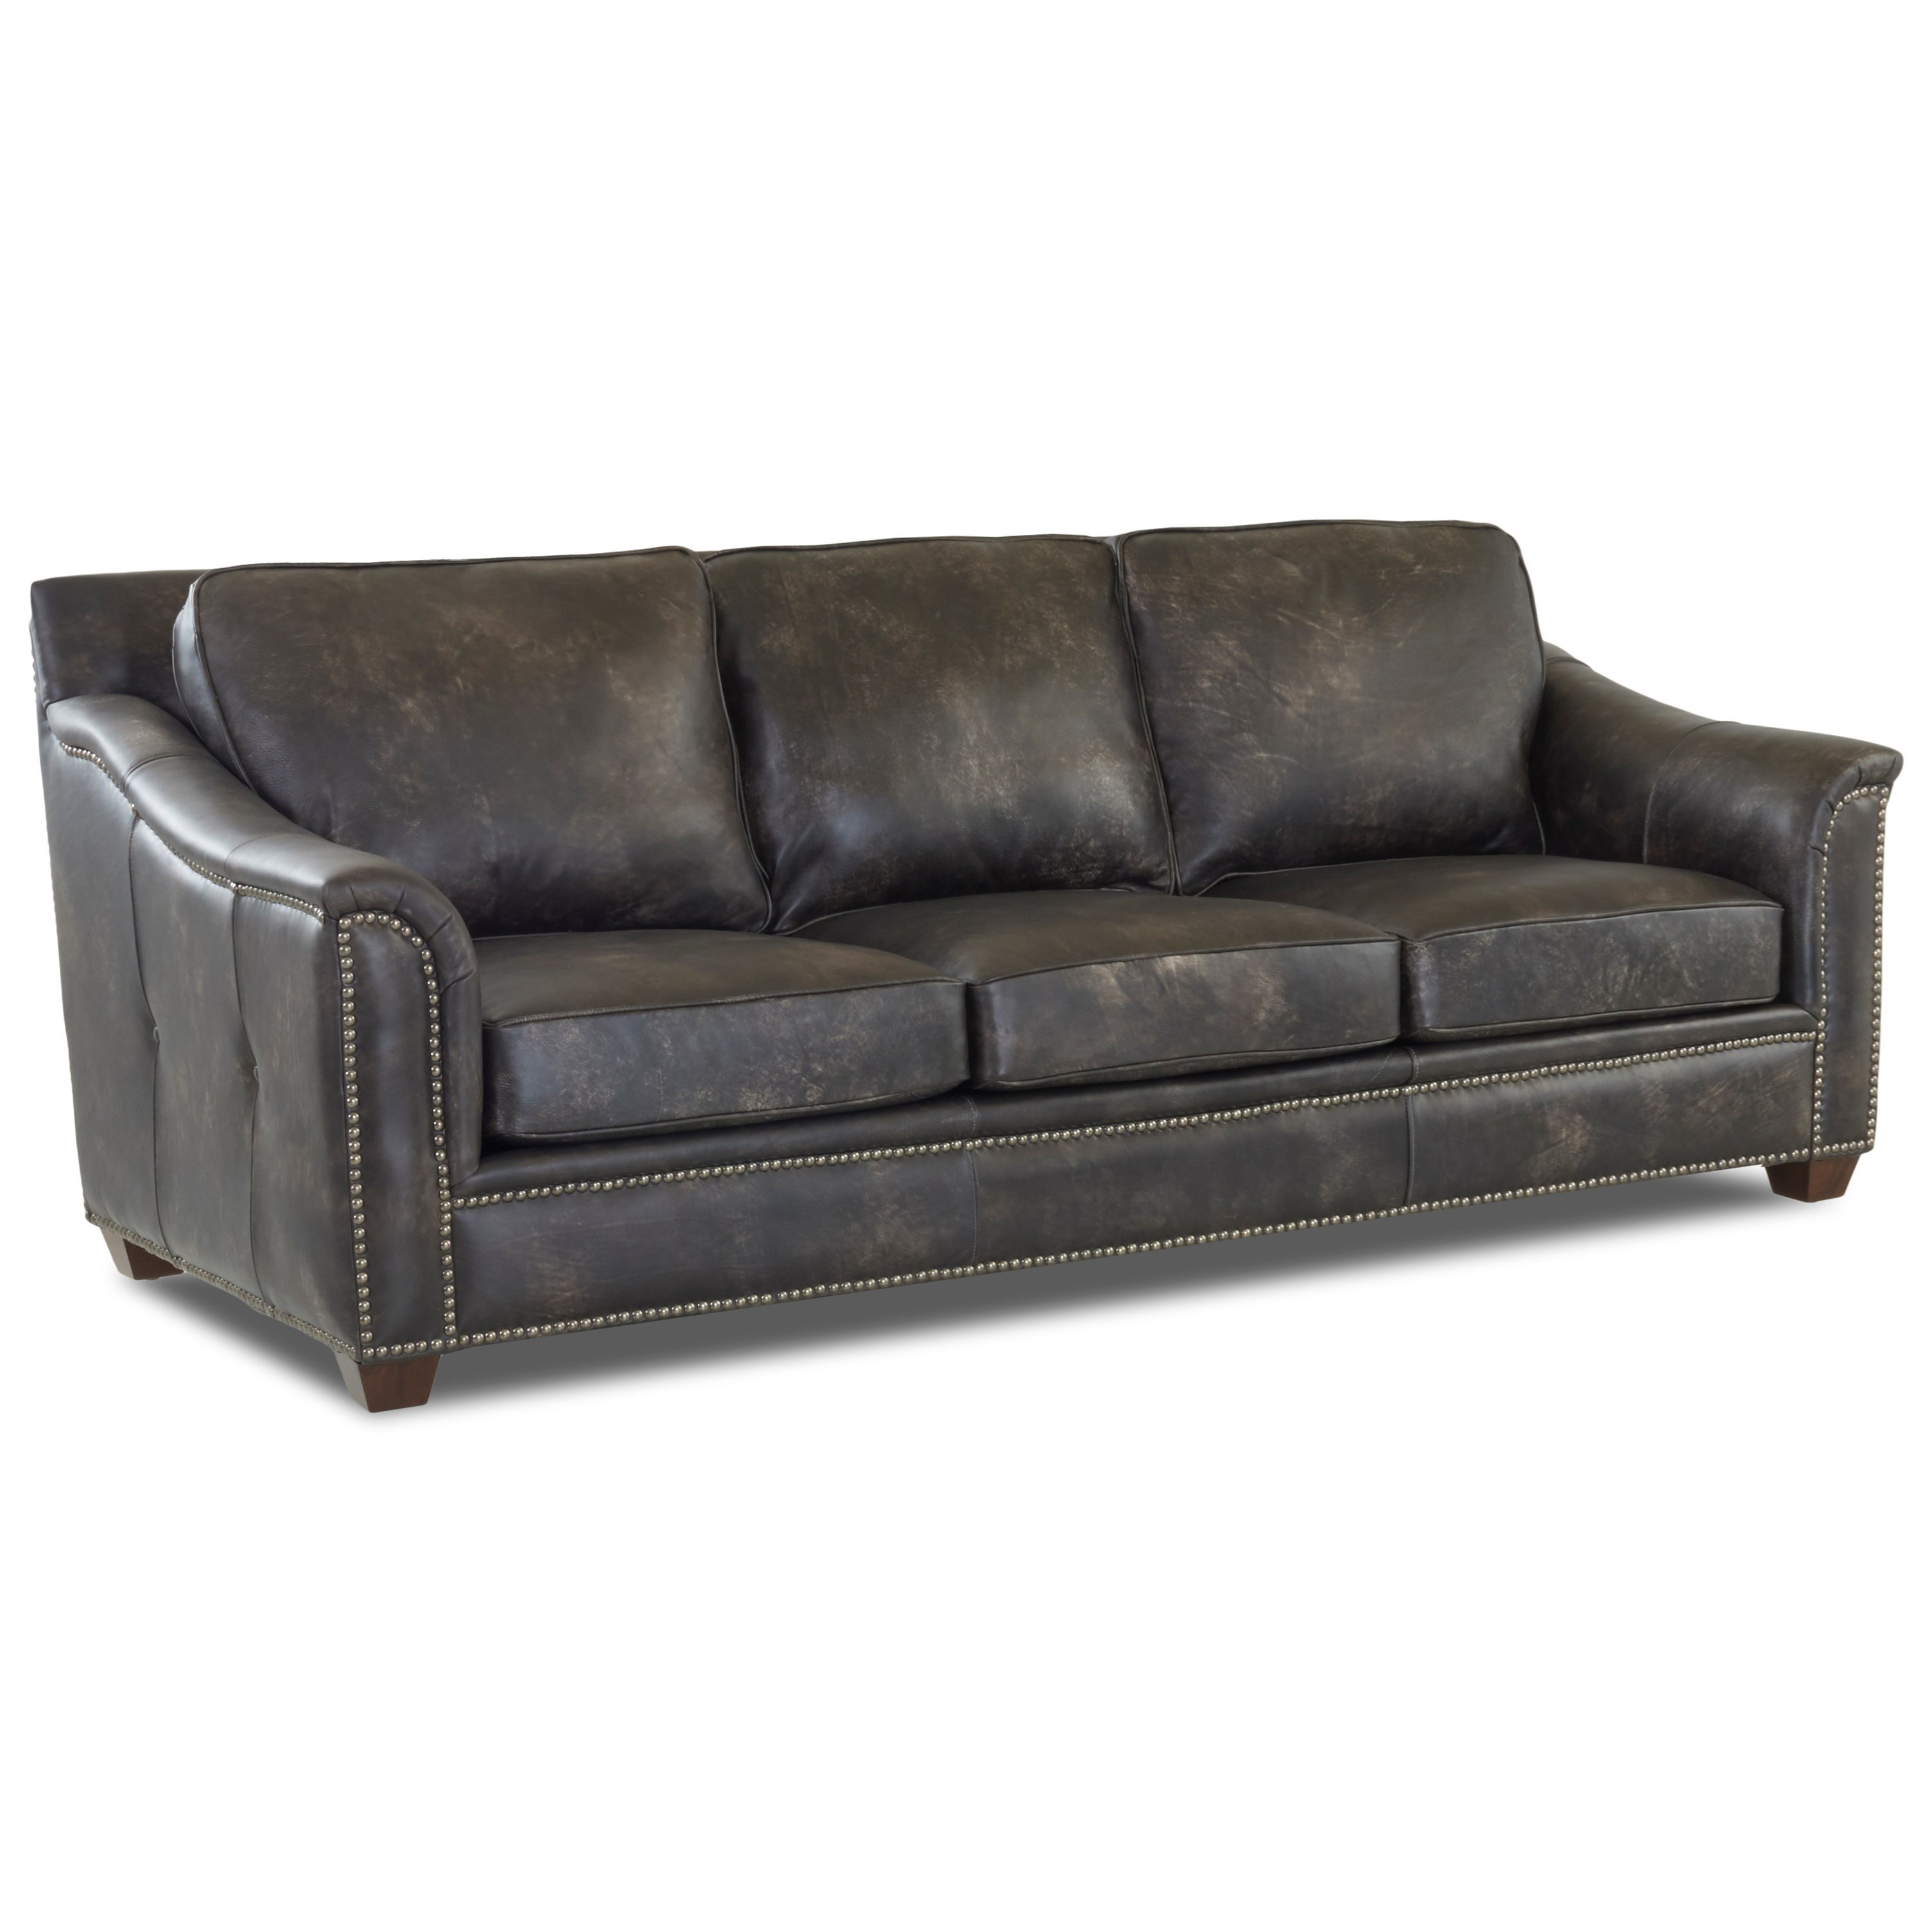 Leather Sofa with Nailhead Studs and Outside Tufting